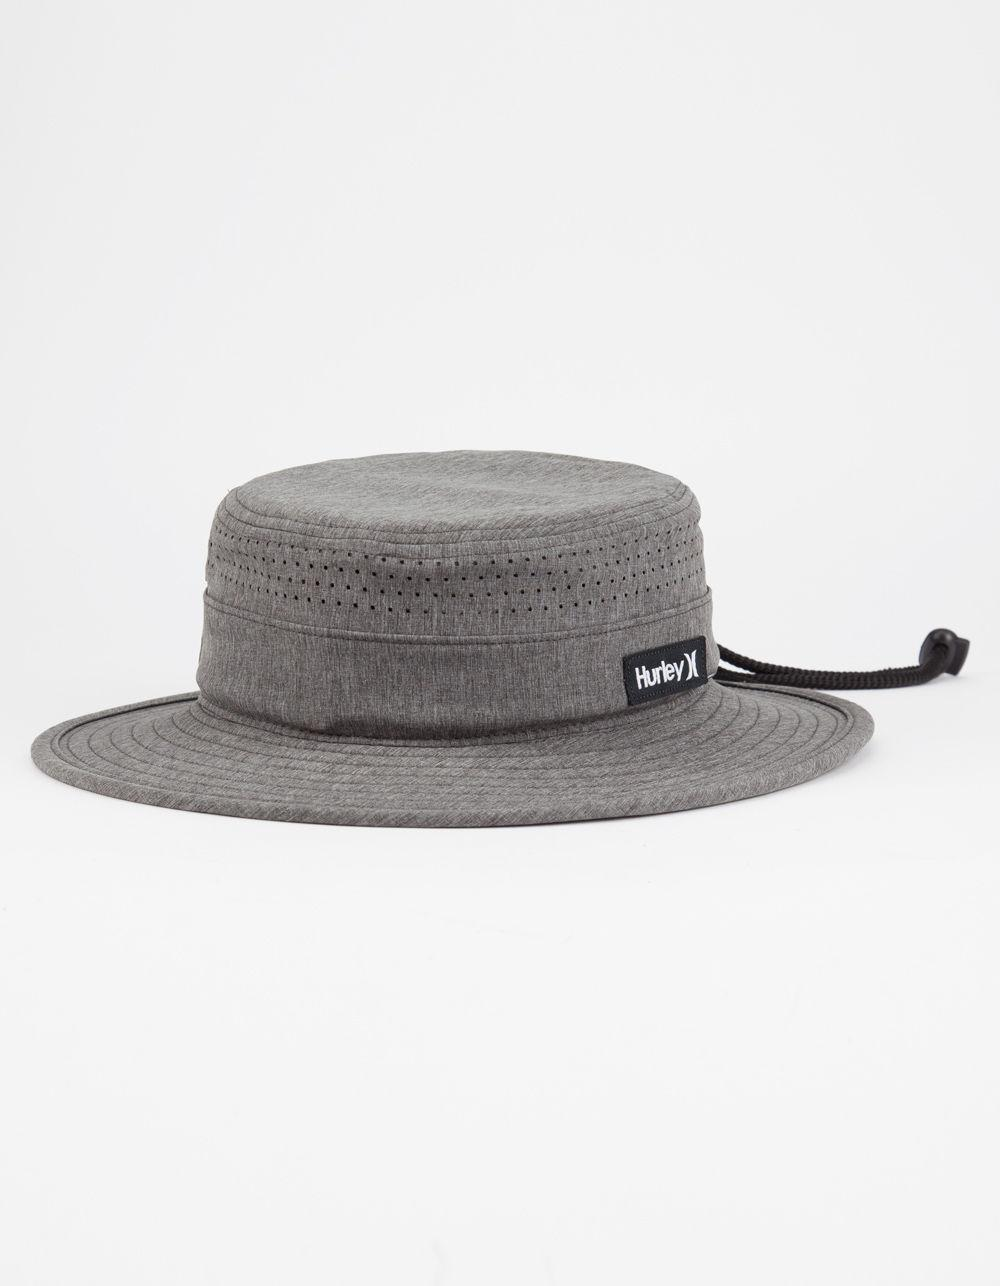 ... new arrivals lyst hurley surfari bucket hat in black for men e7efe ebfb2 3a8d3b0975f8